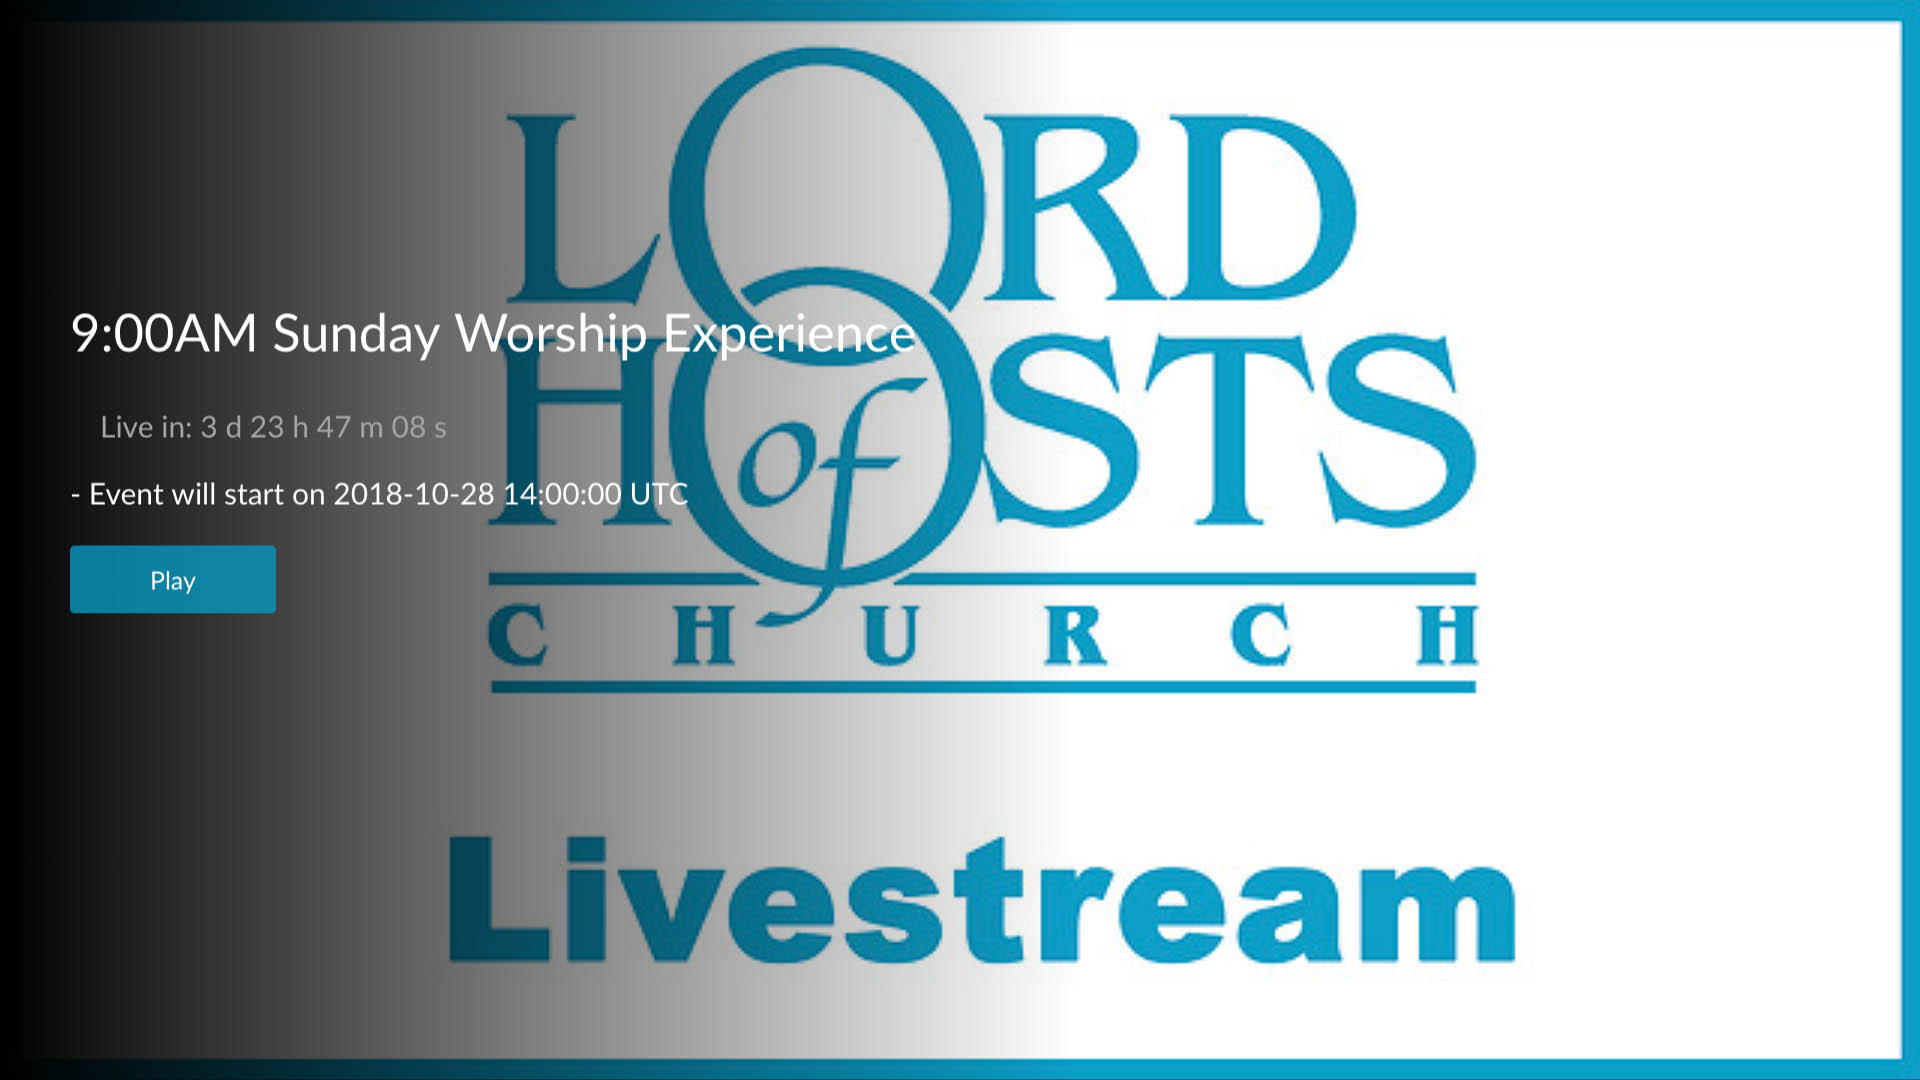 Lord of Hosts Church - Fire TV App | Lightcast com